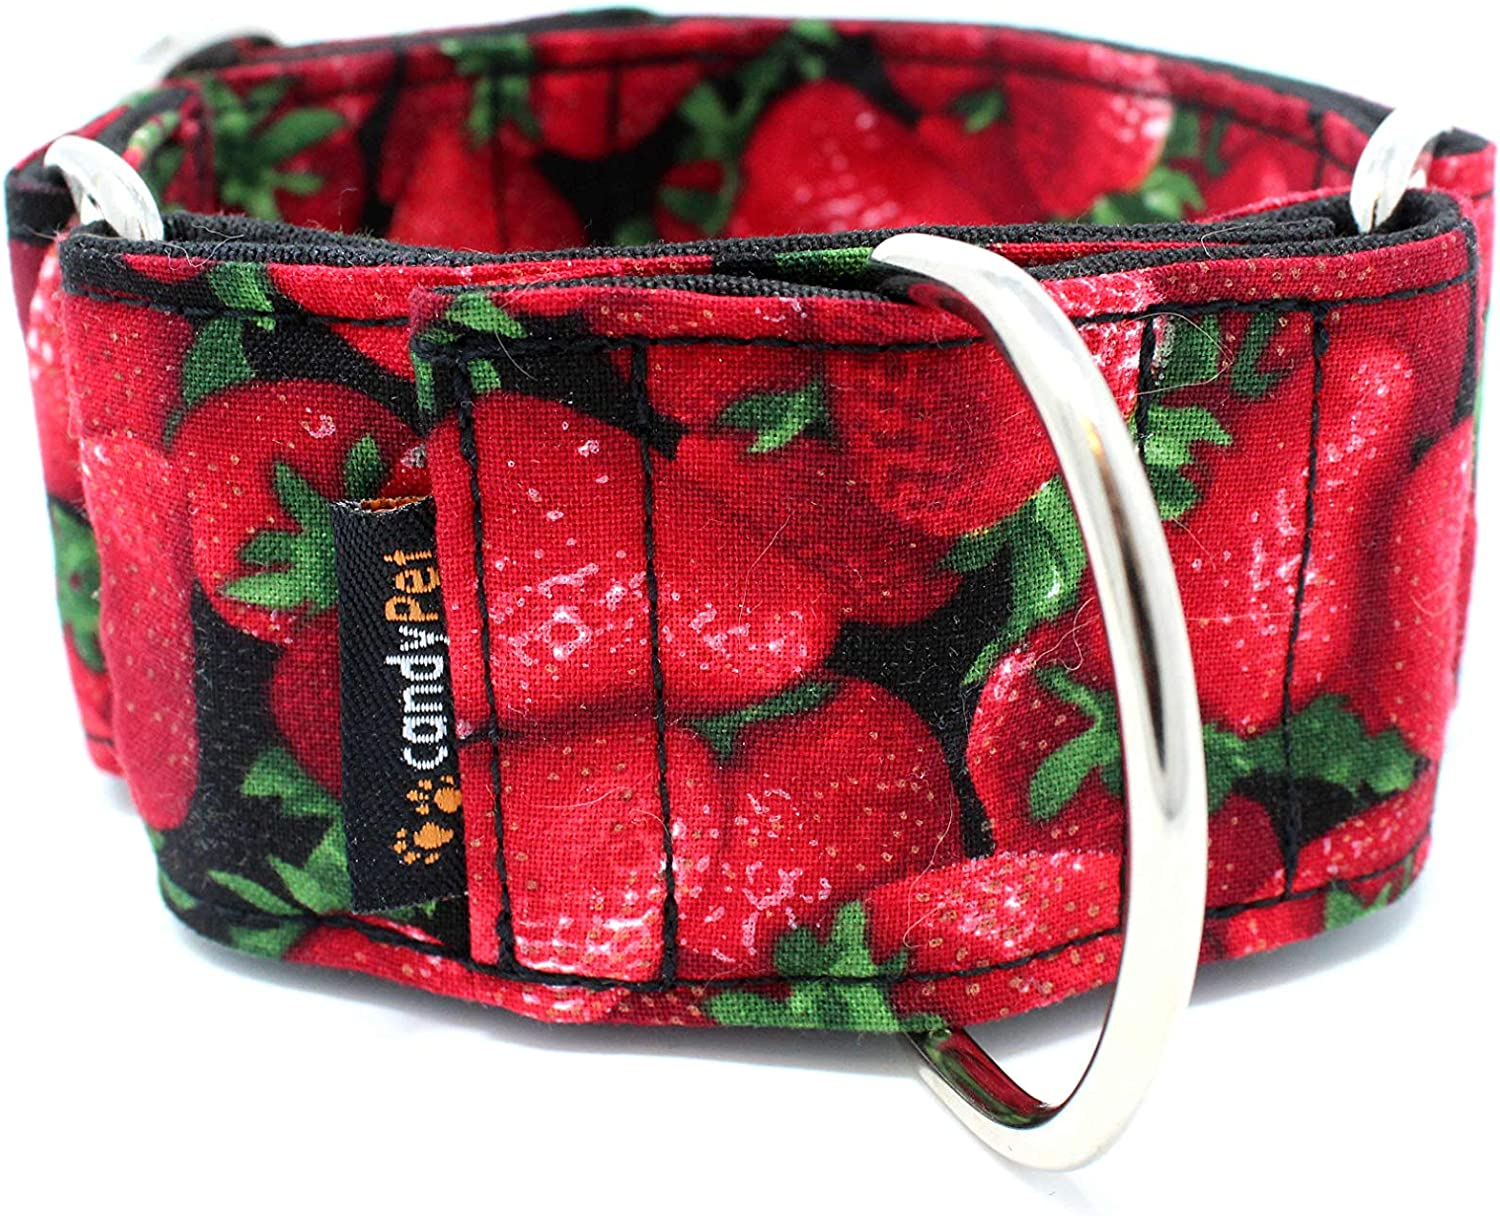 candyPet Milwaukee Mall Martingale Dog Collar Mail order - Strawberries Model